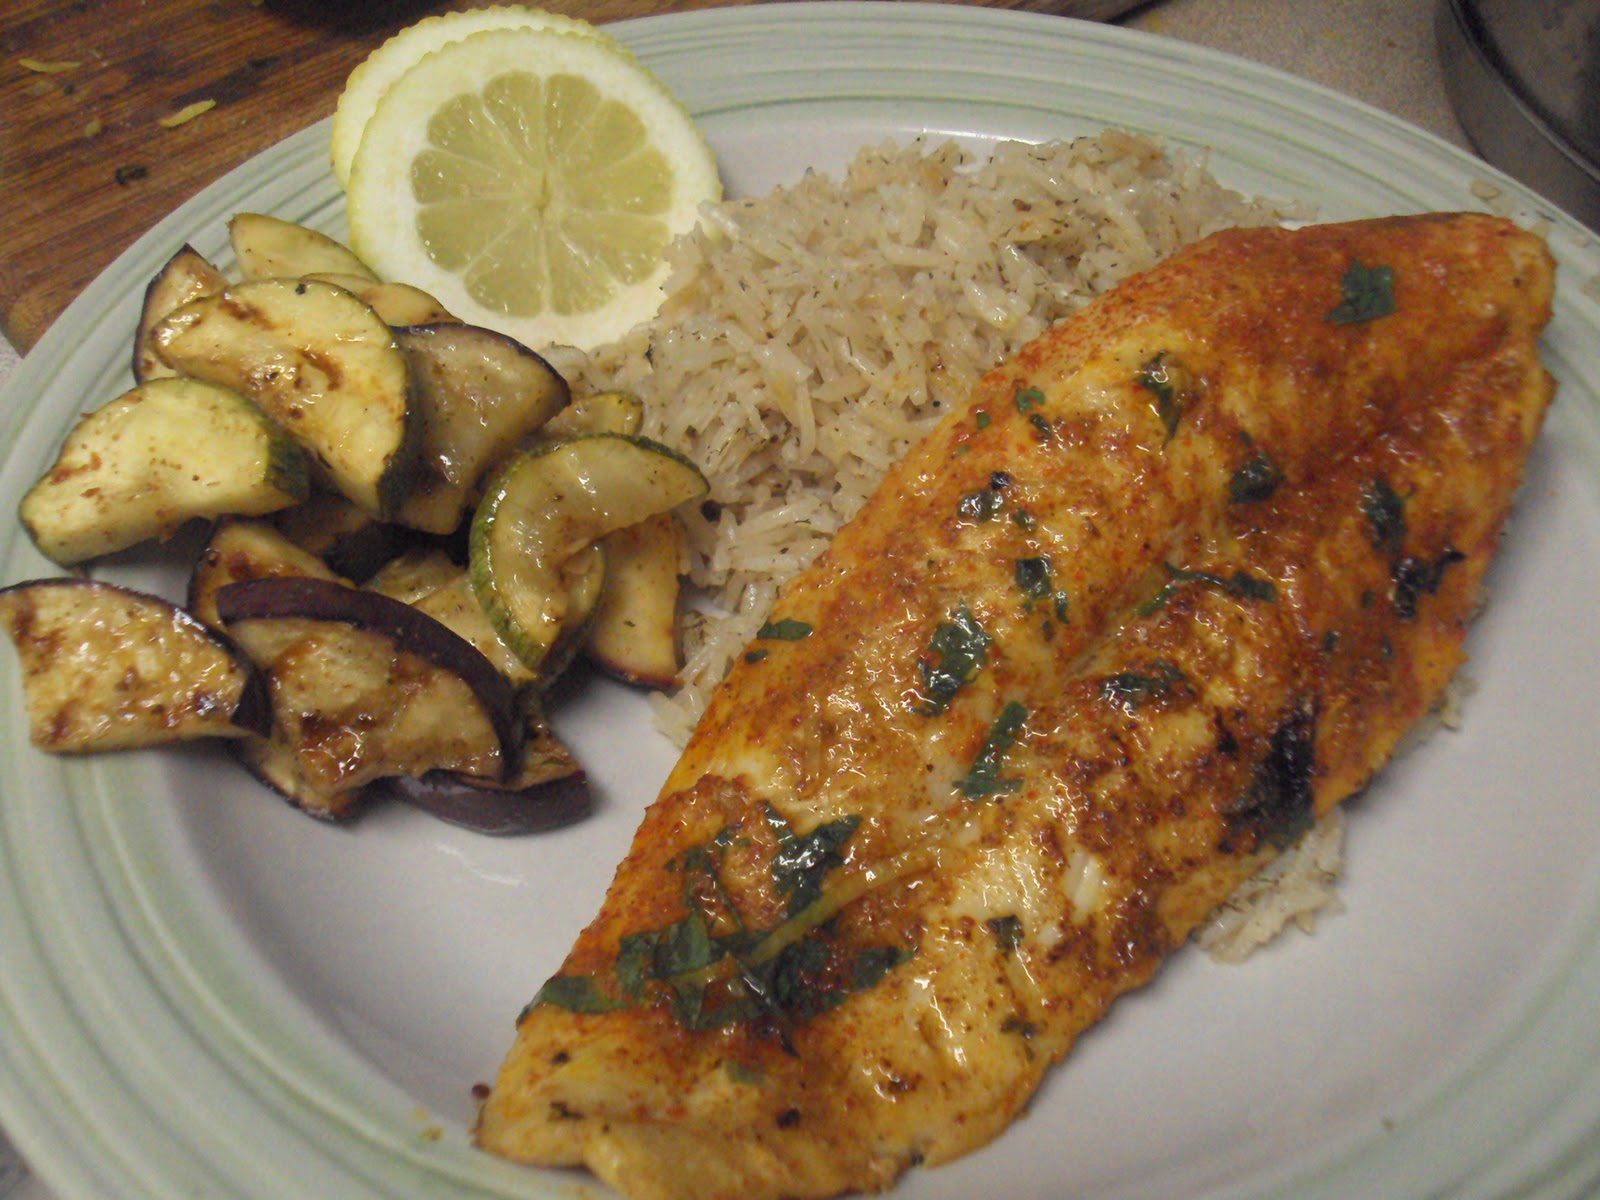 The muslim wife 39 s kitchen october 2010 for What is swai fish